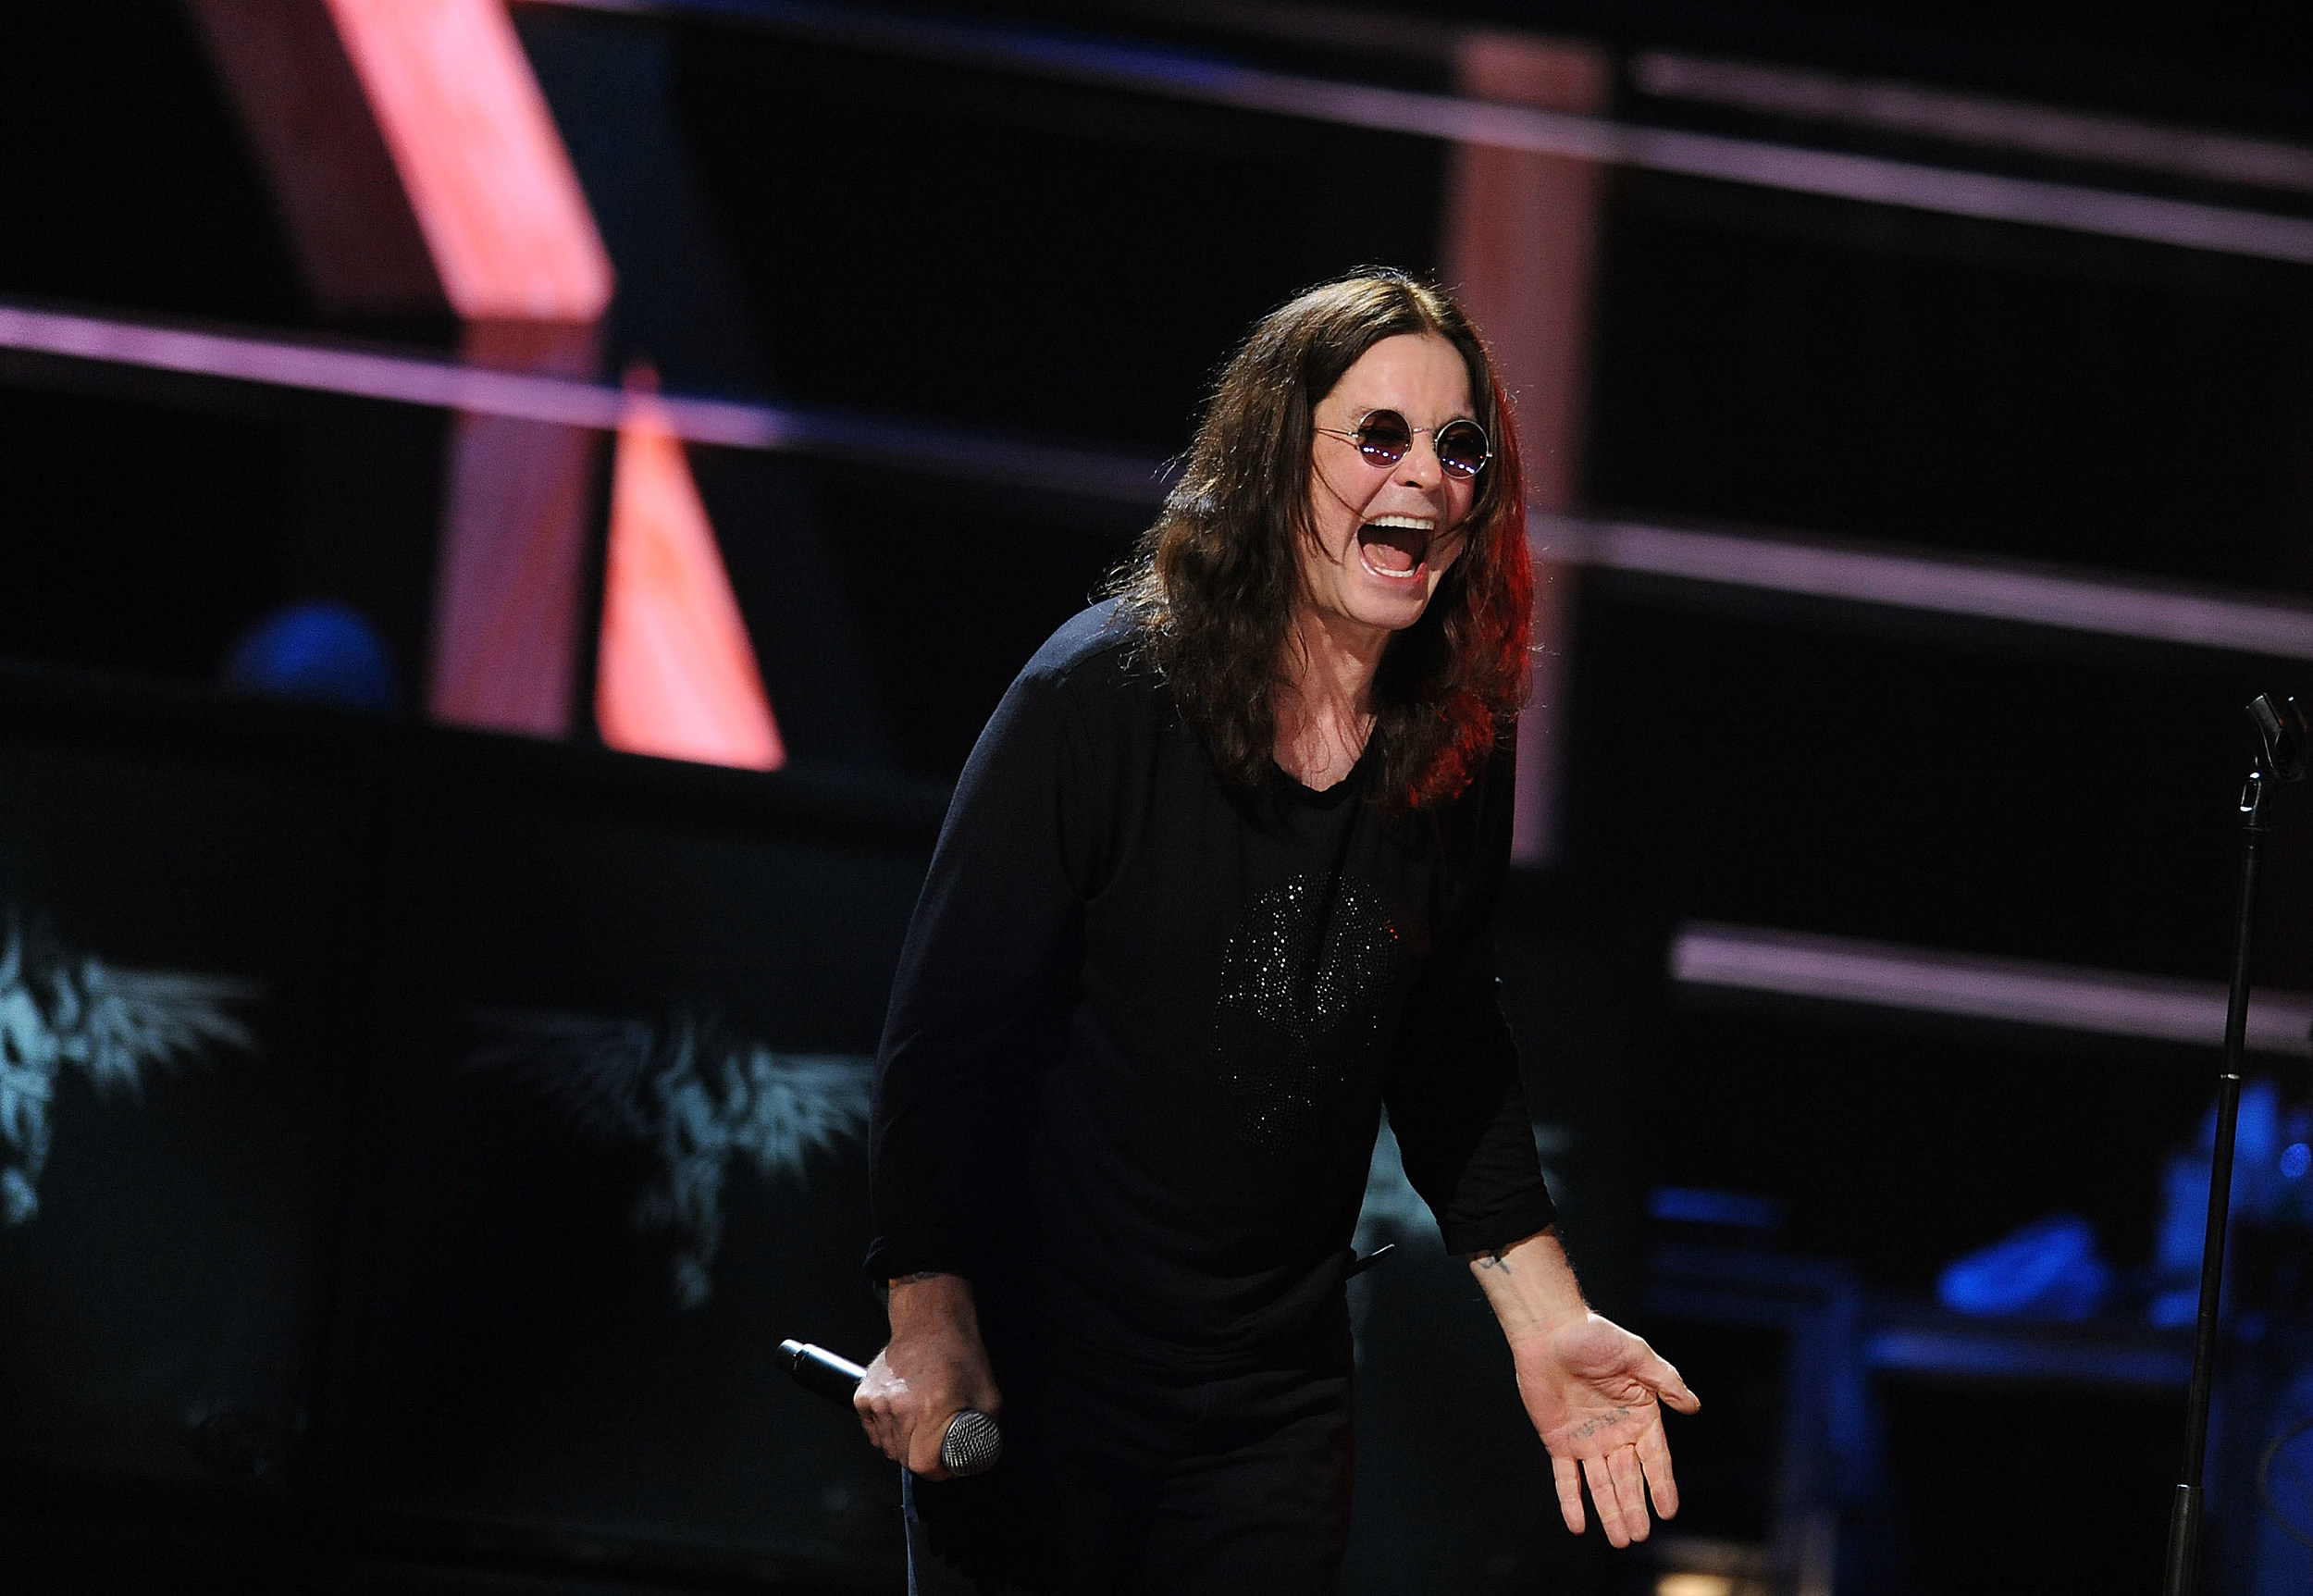 Ozzy Osbourne guitarists are the best of the best